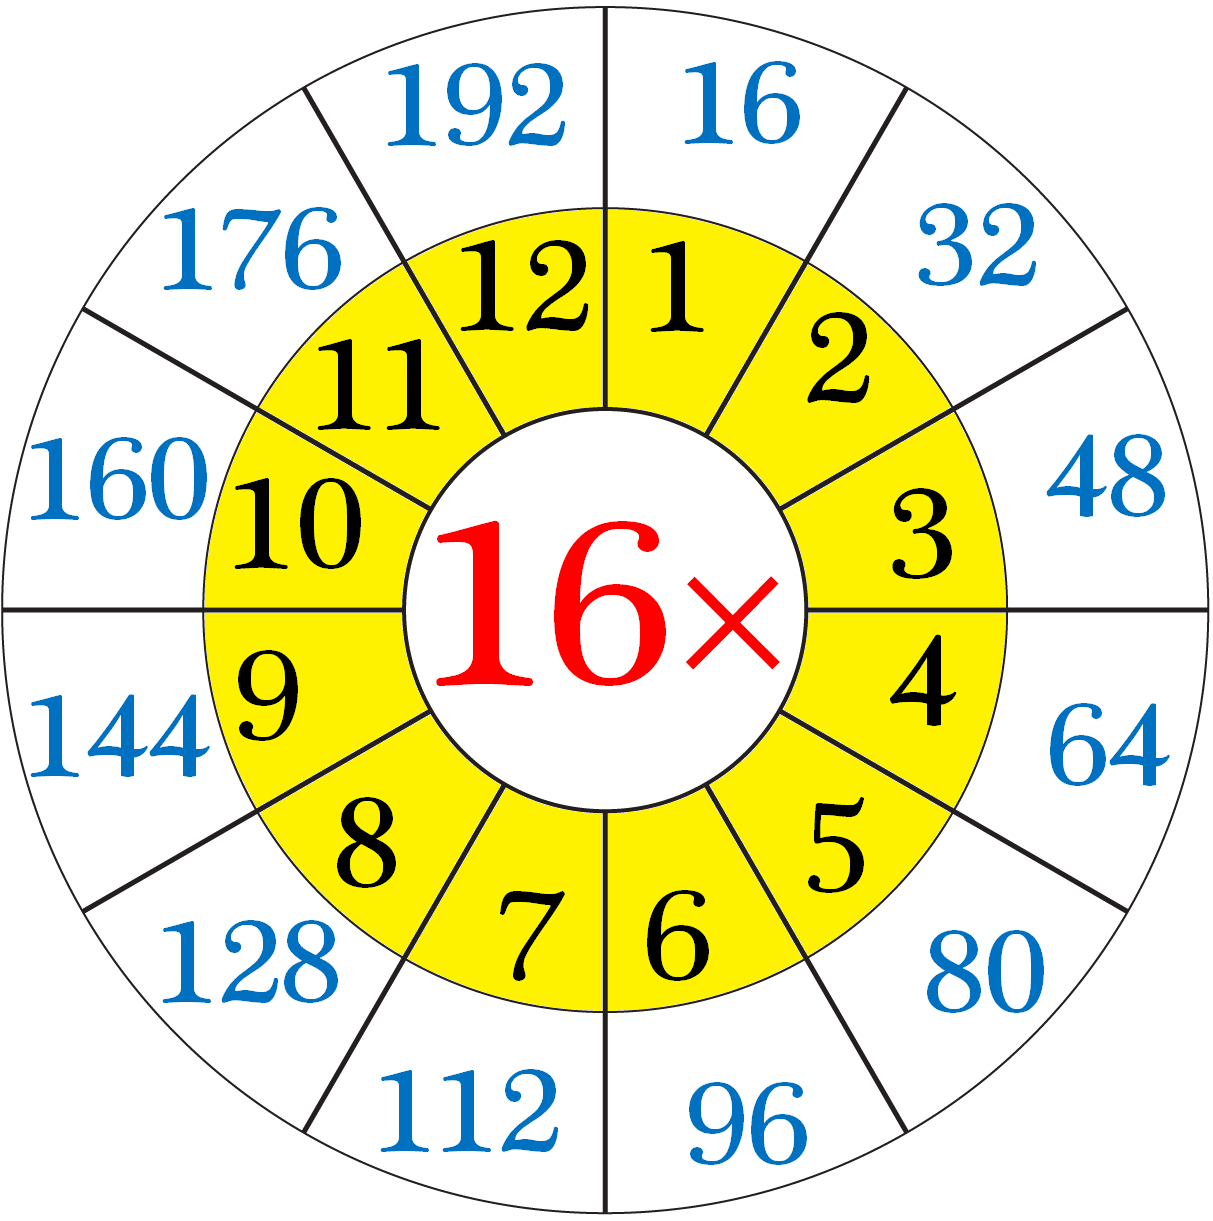 16 Times Multiplication Table chart